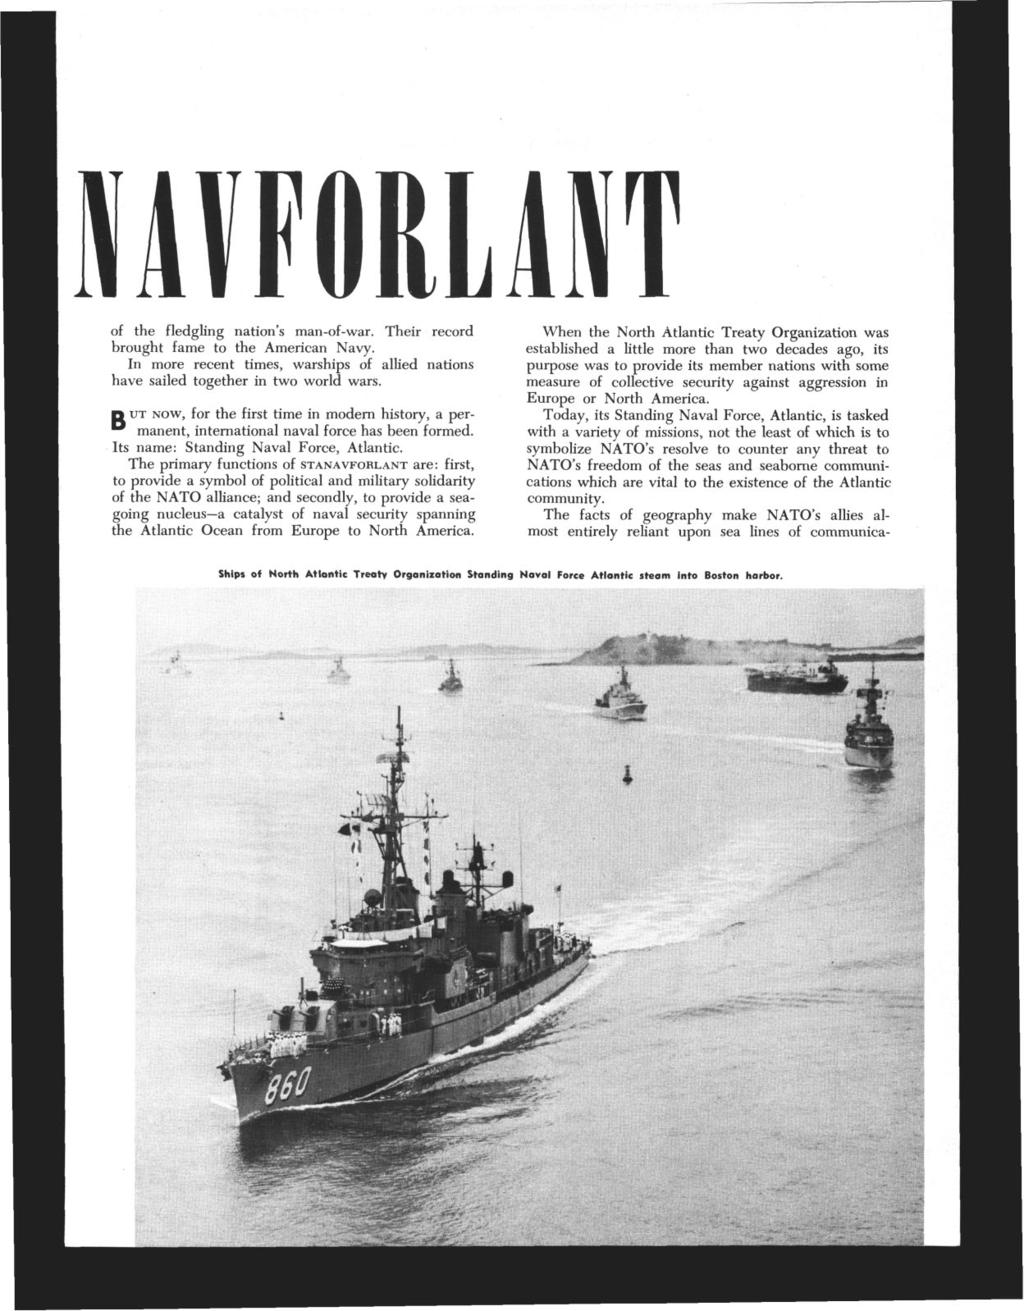 of the fledgling nation's man-of-war. Theirecord brought fame to the American Navy. In more recent times, warships of allied nations have sailed together in two world wars.